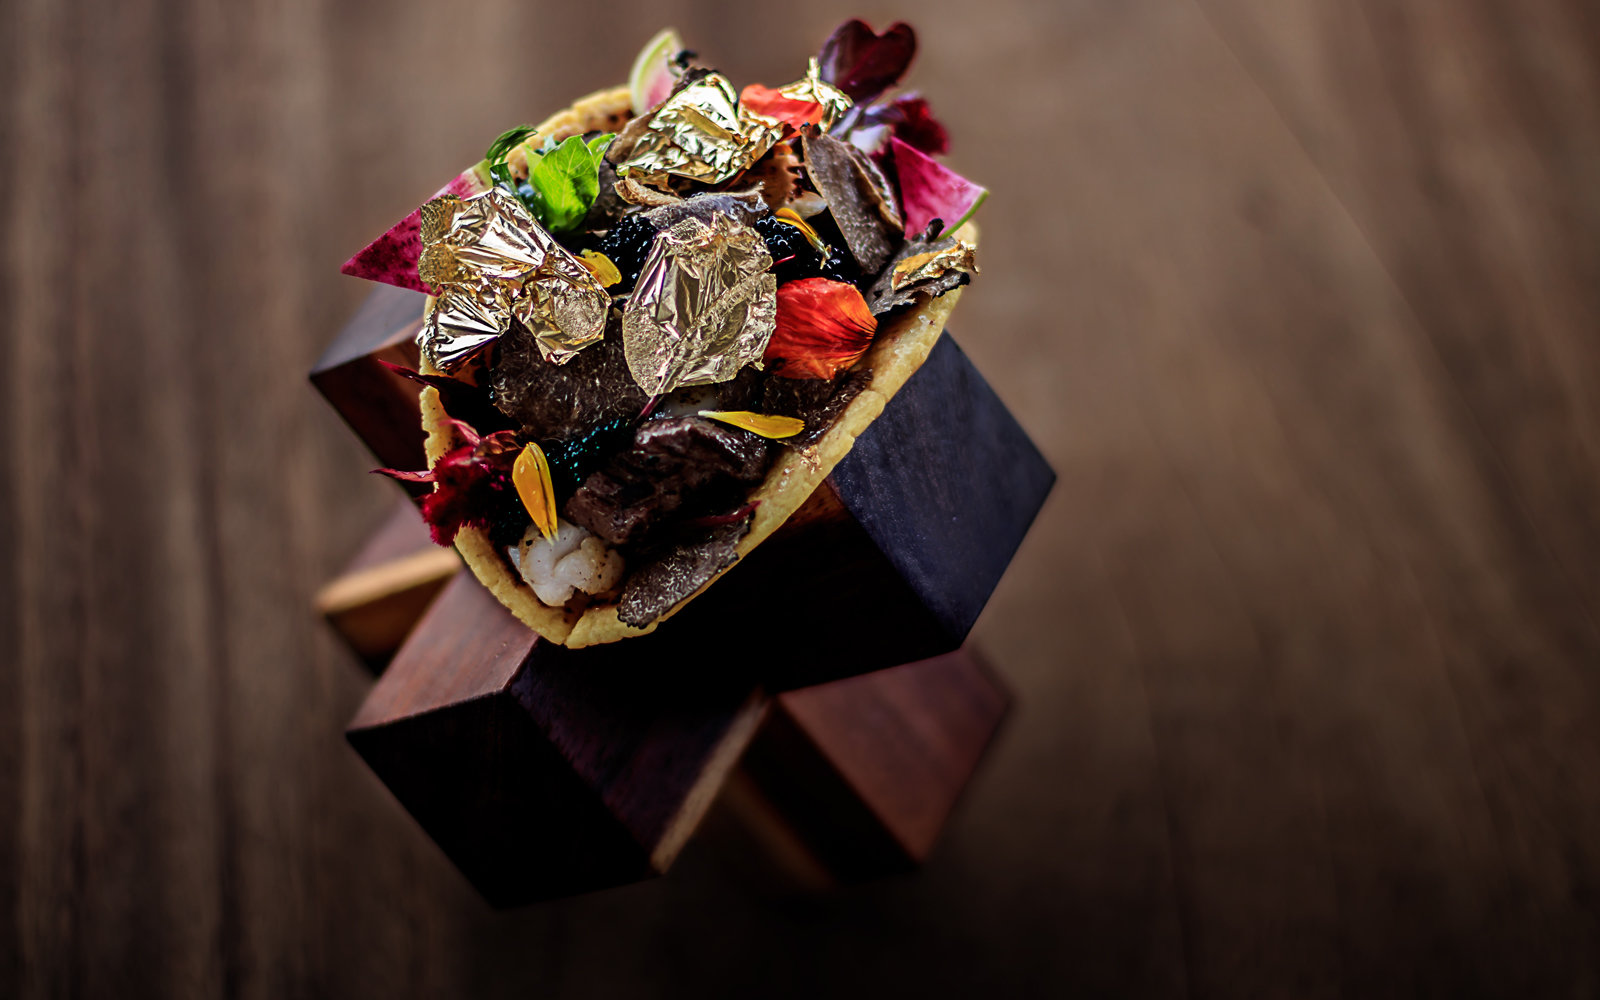 Behold the $25k Taco